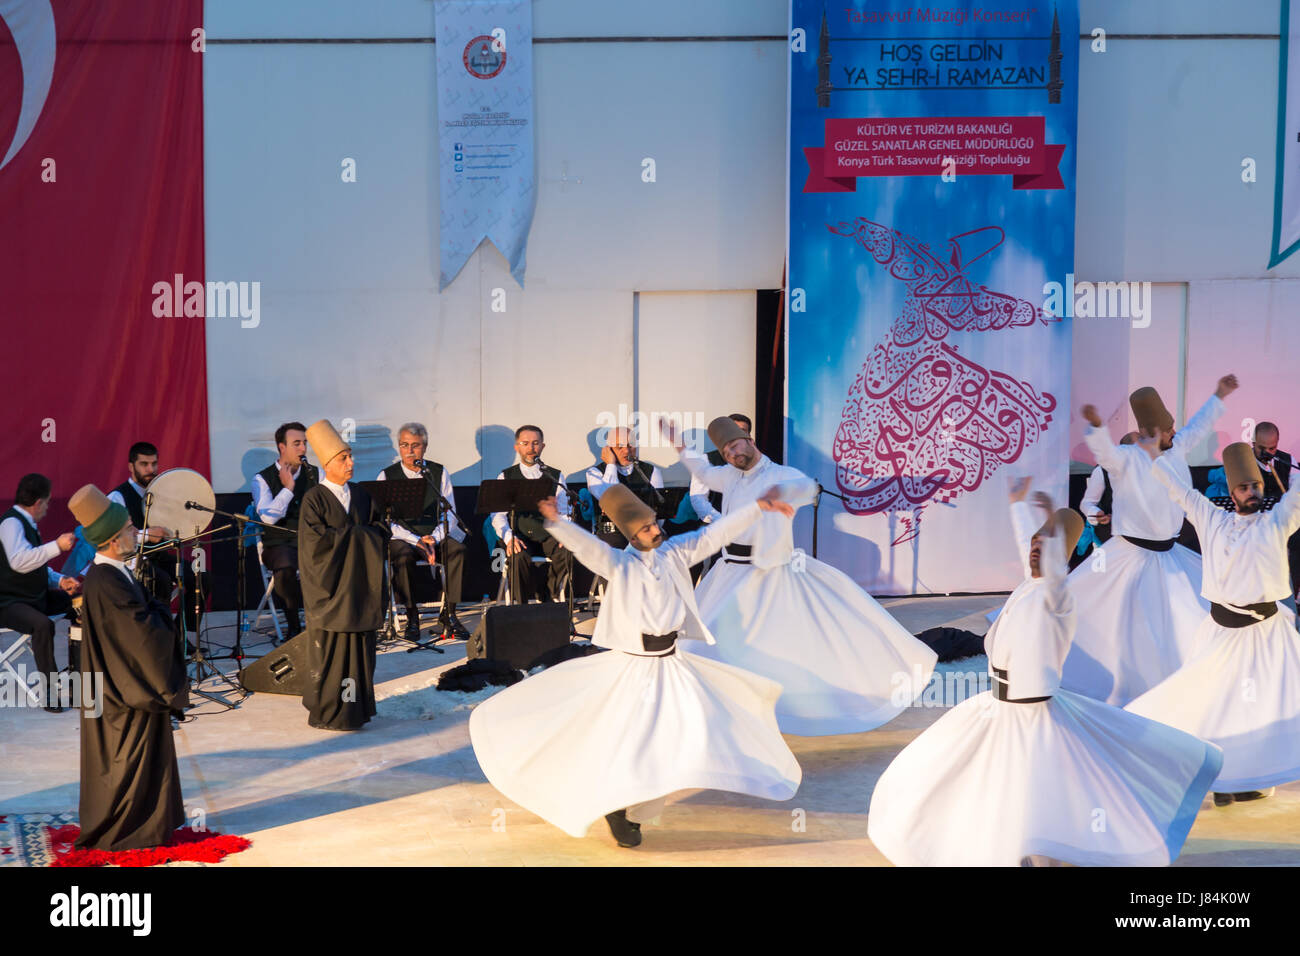 At Marmaris amphitheater in Marmaris, Mugla, Turkey - May 26, 2017 : Whirling dervishes show and religious music - Stock Image